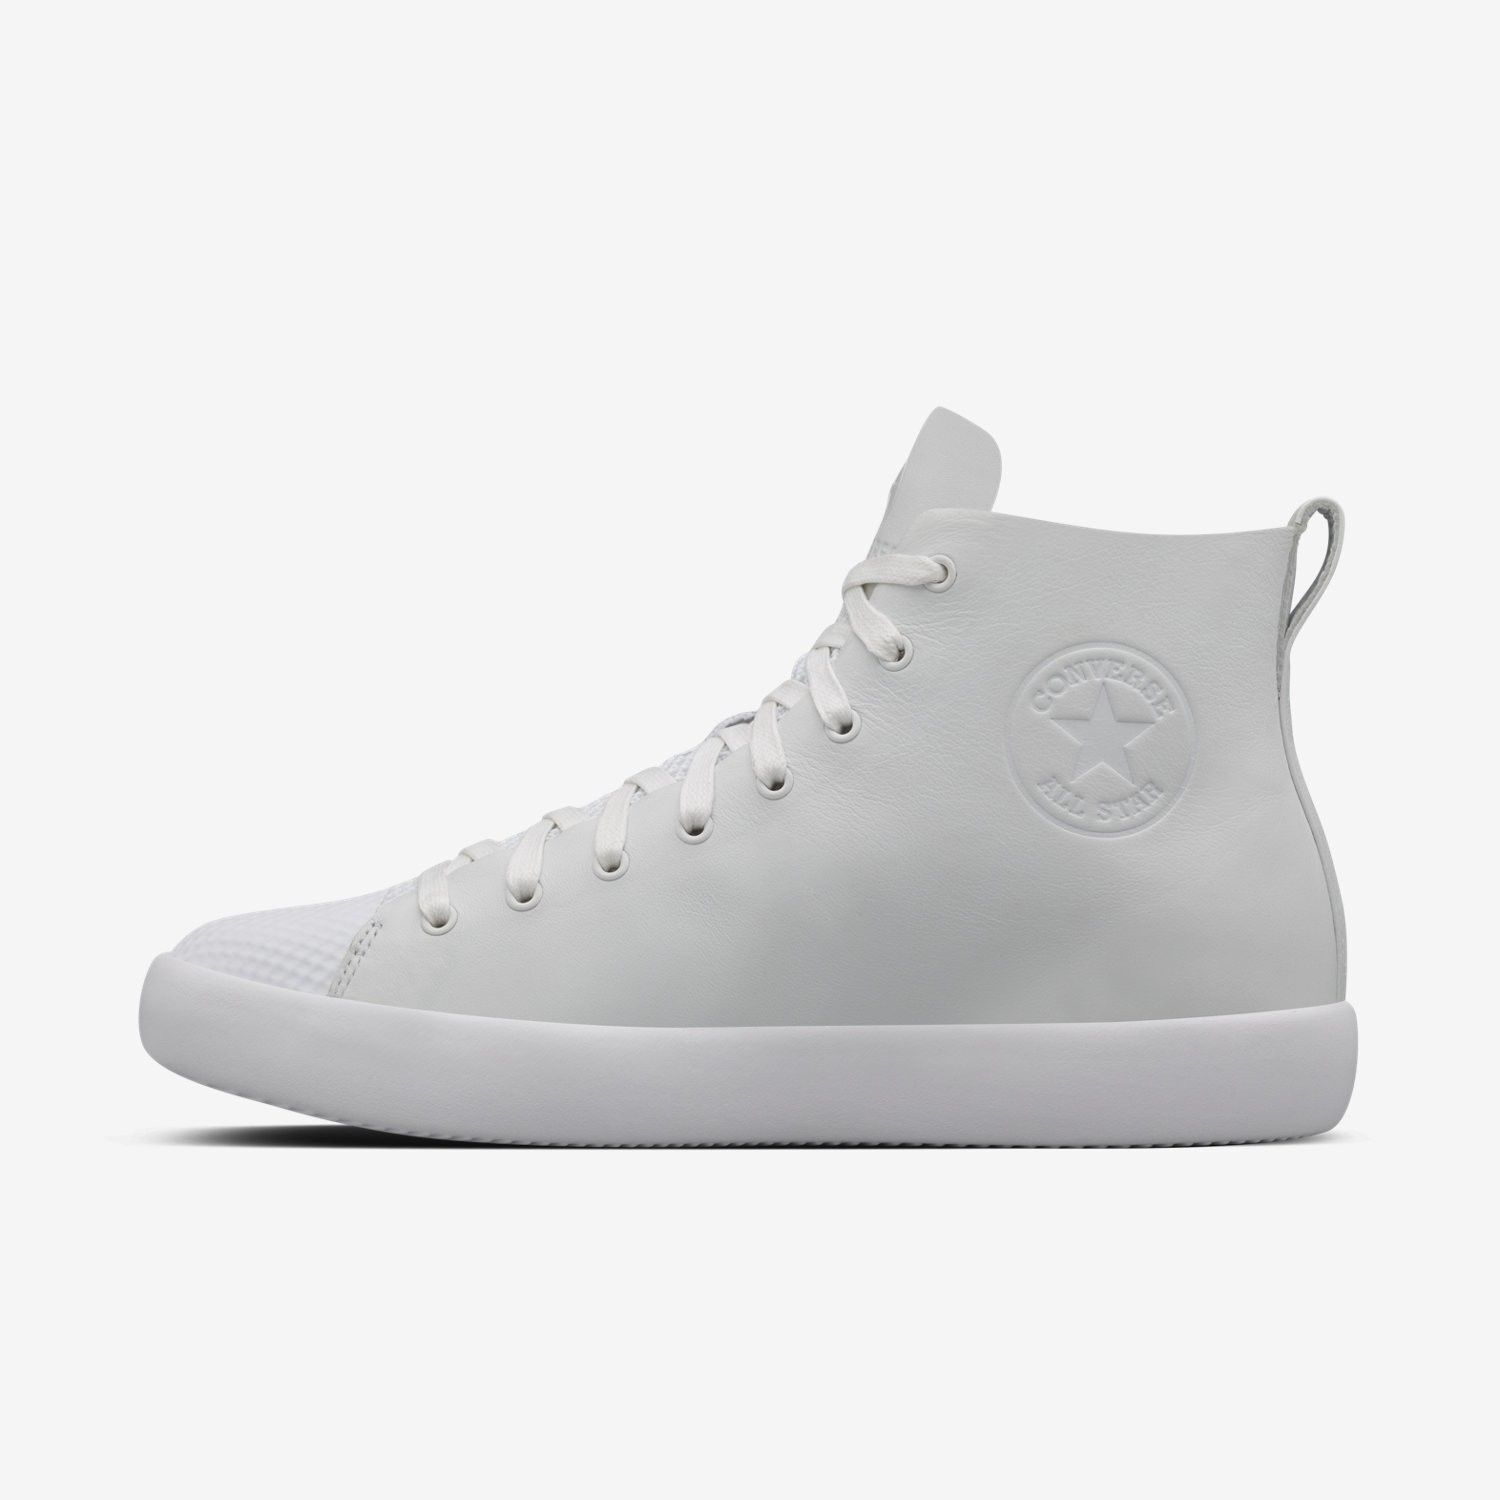 Nouveau Converse All Star moderne HTM Jack Purcell blanc taille 4 155023 C 894953 100